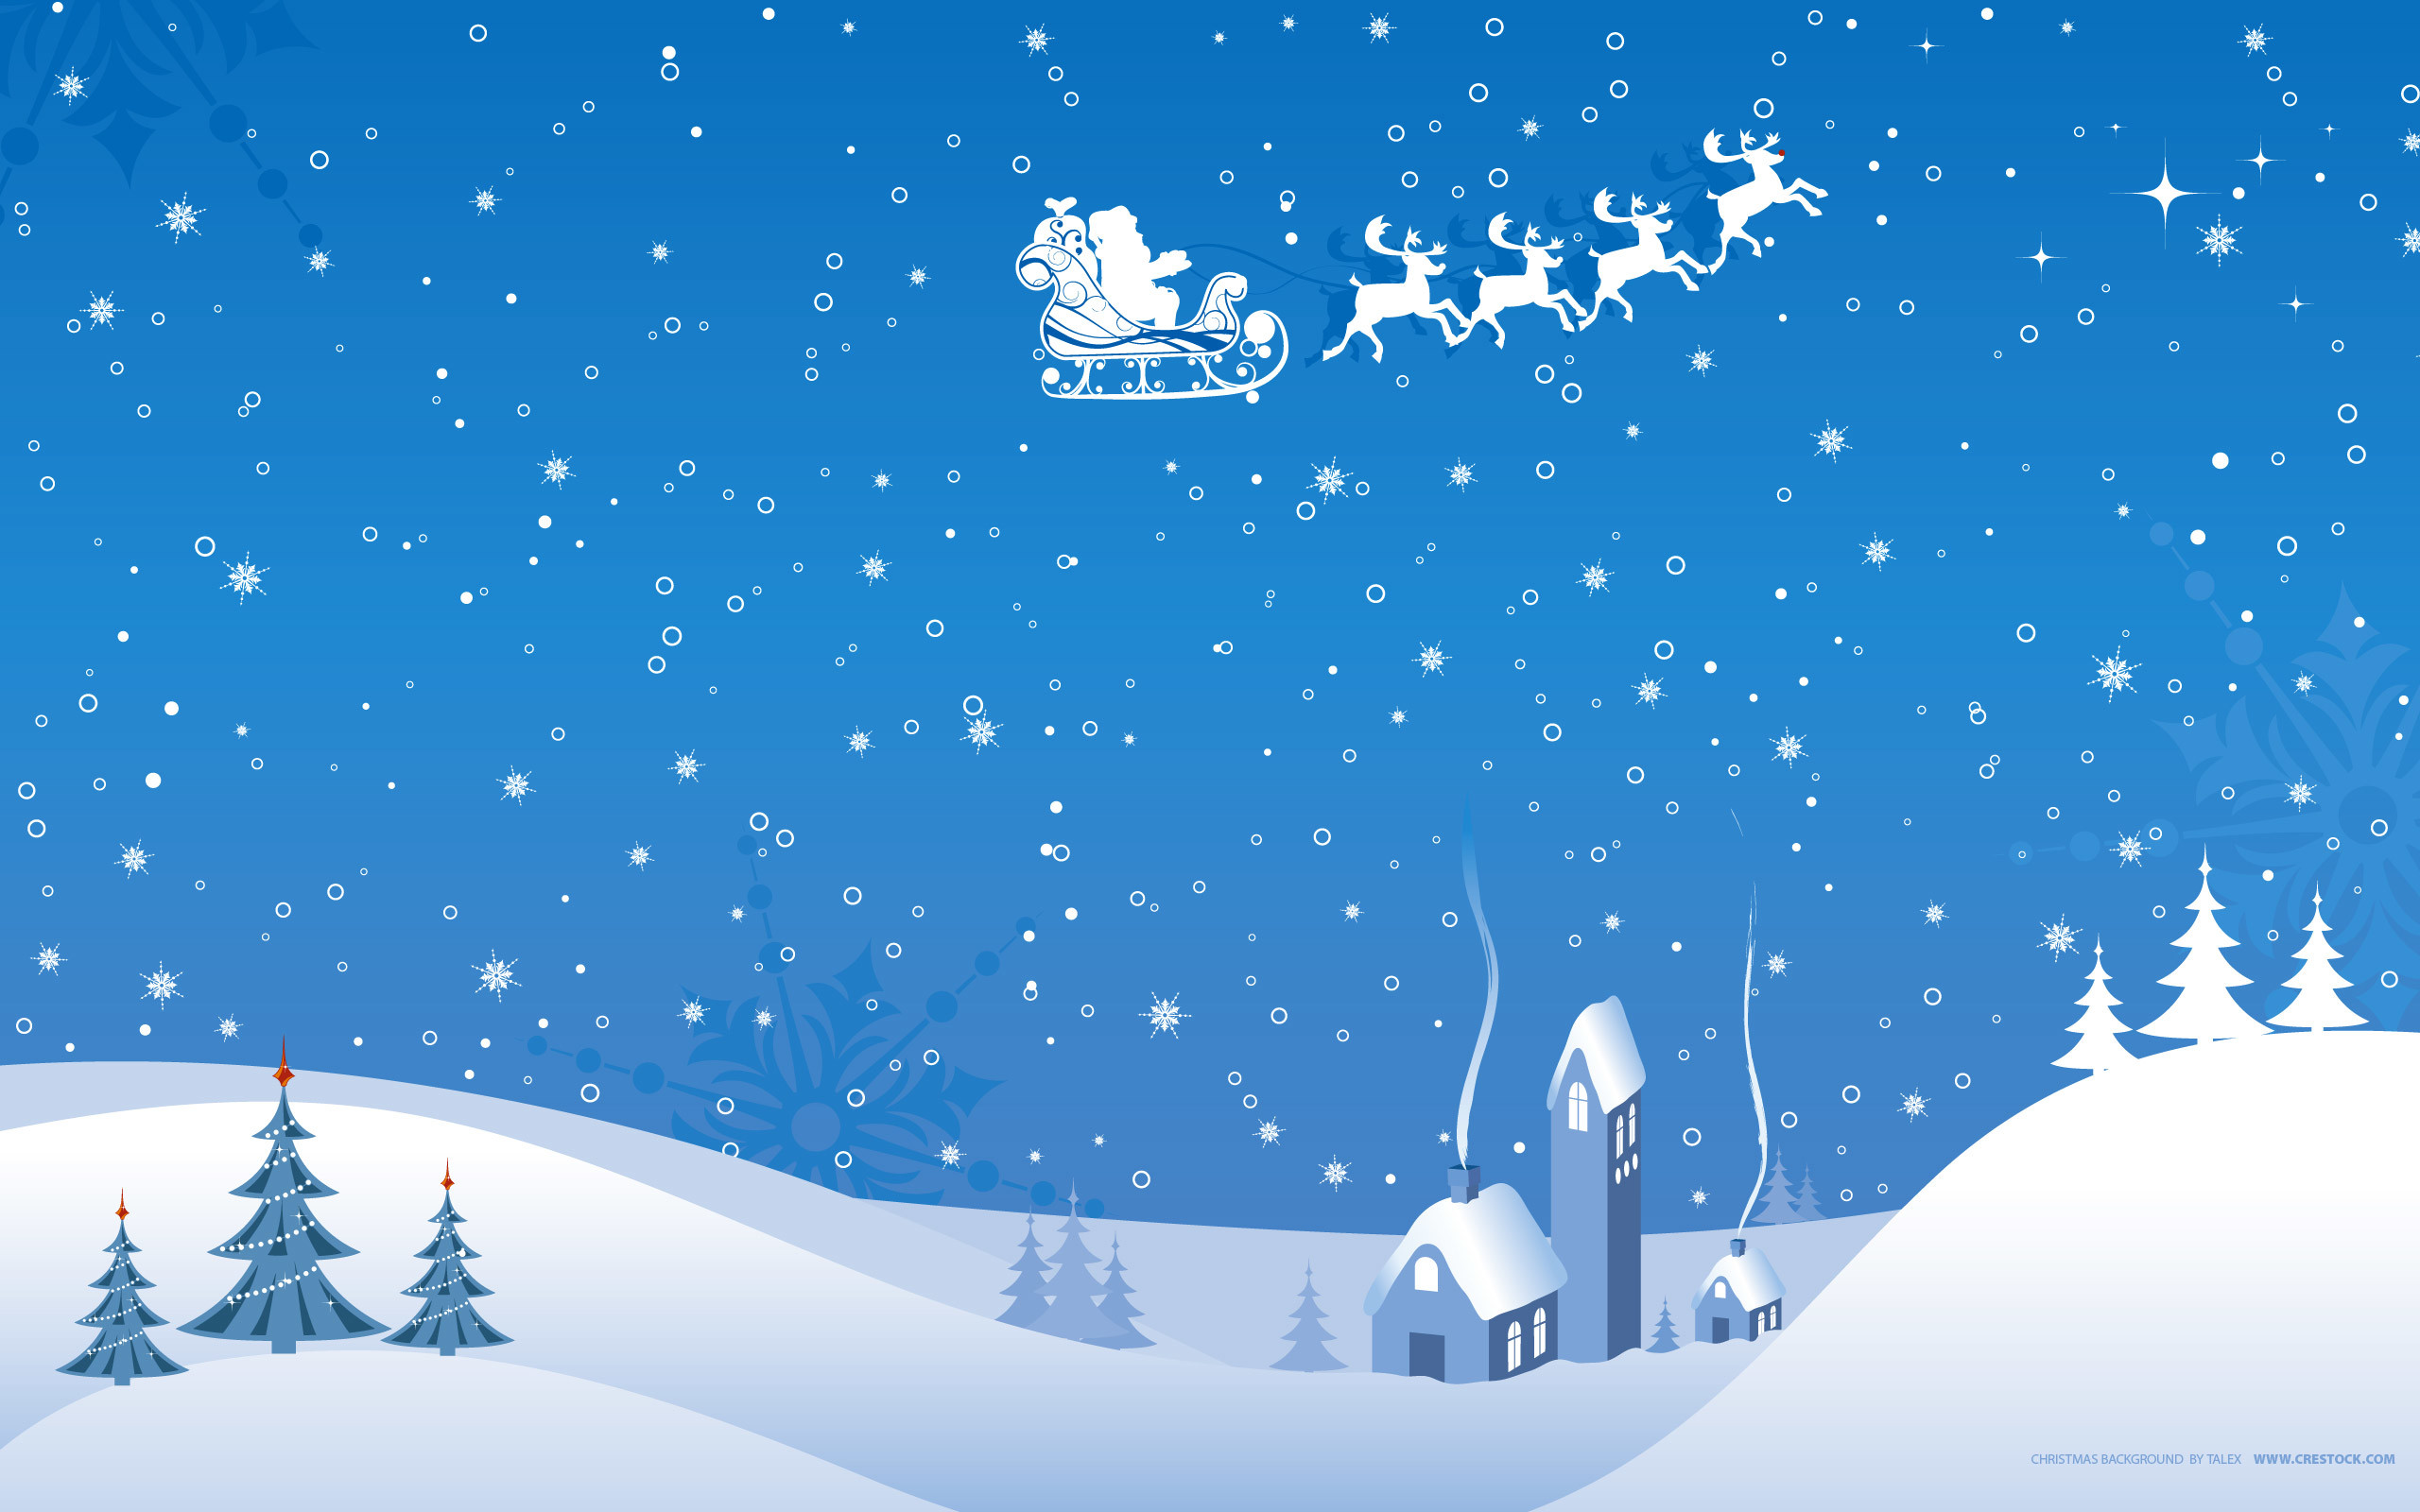 free download 65 christmas cartoon wallpapers on wallpaperplay 2560x1600 for your desktop mobile tablet explore 50 merry christmas cartoon wallpapers merry christmas cartoon wallpapers merry christmas wallpaper merry christmas background wallpapersafari